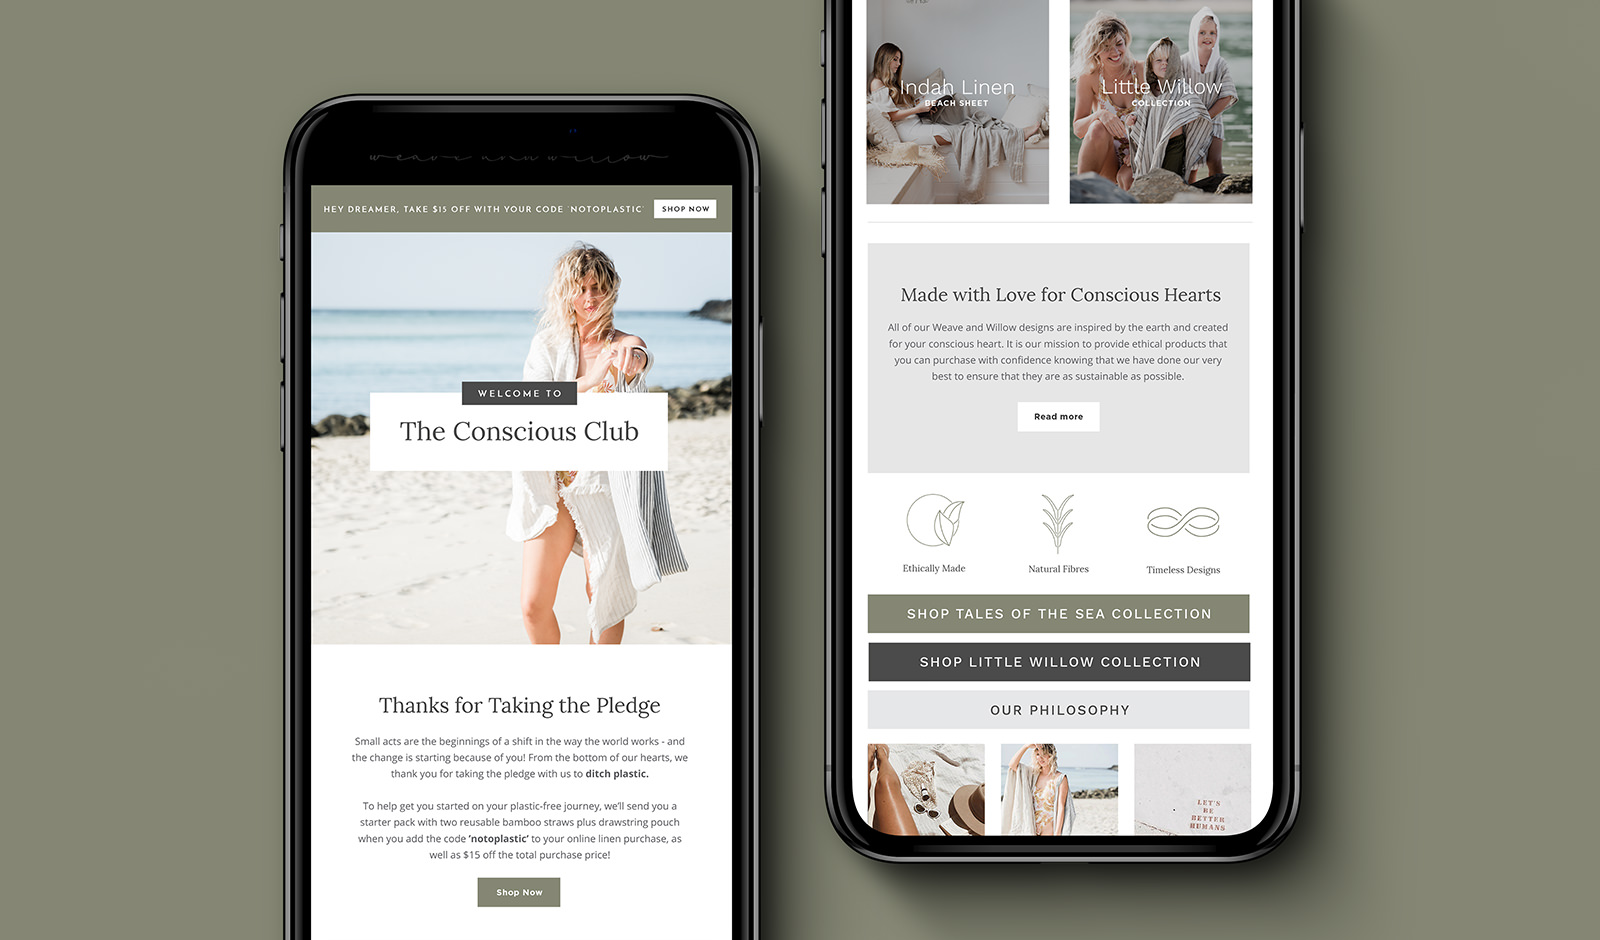 Email marketing design for linen company on two mobile phones